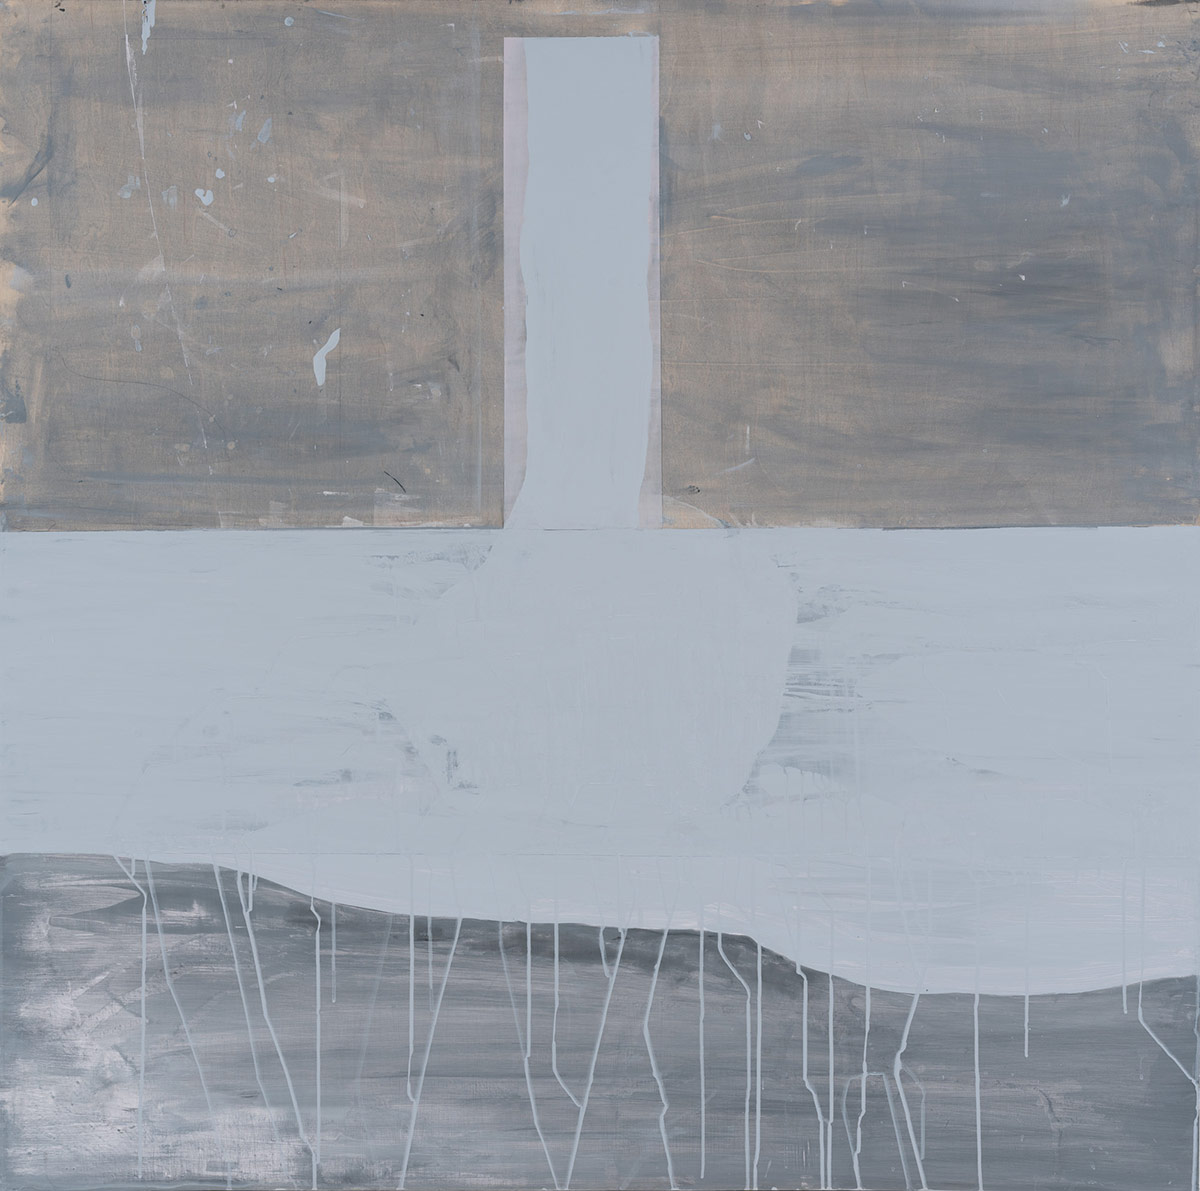 """Event Ground,  2014. Acrylic, acrylic polymer and graphite on wood panel. 48""""x48"""""""